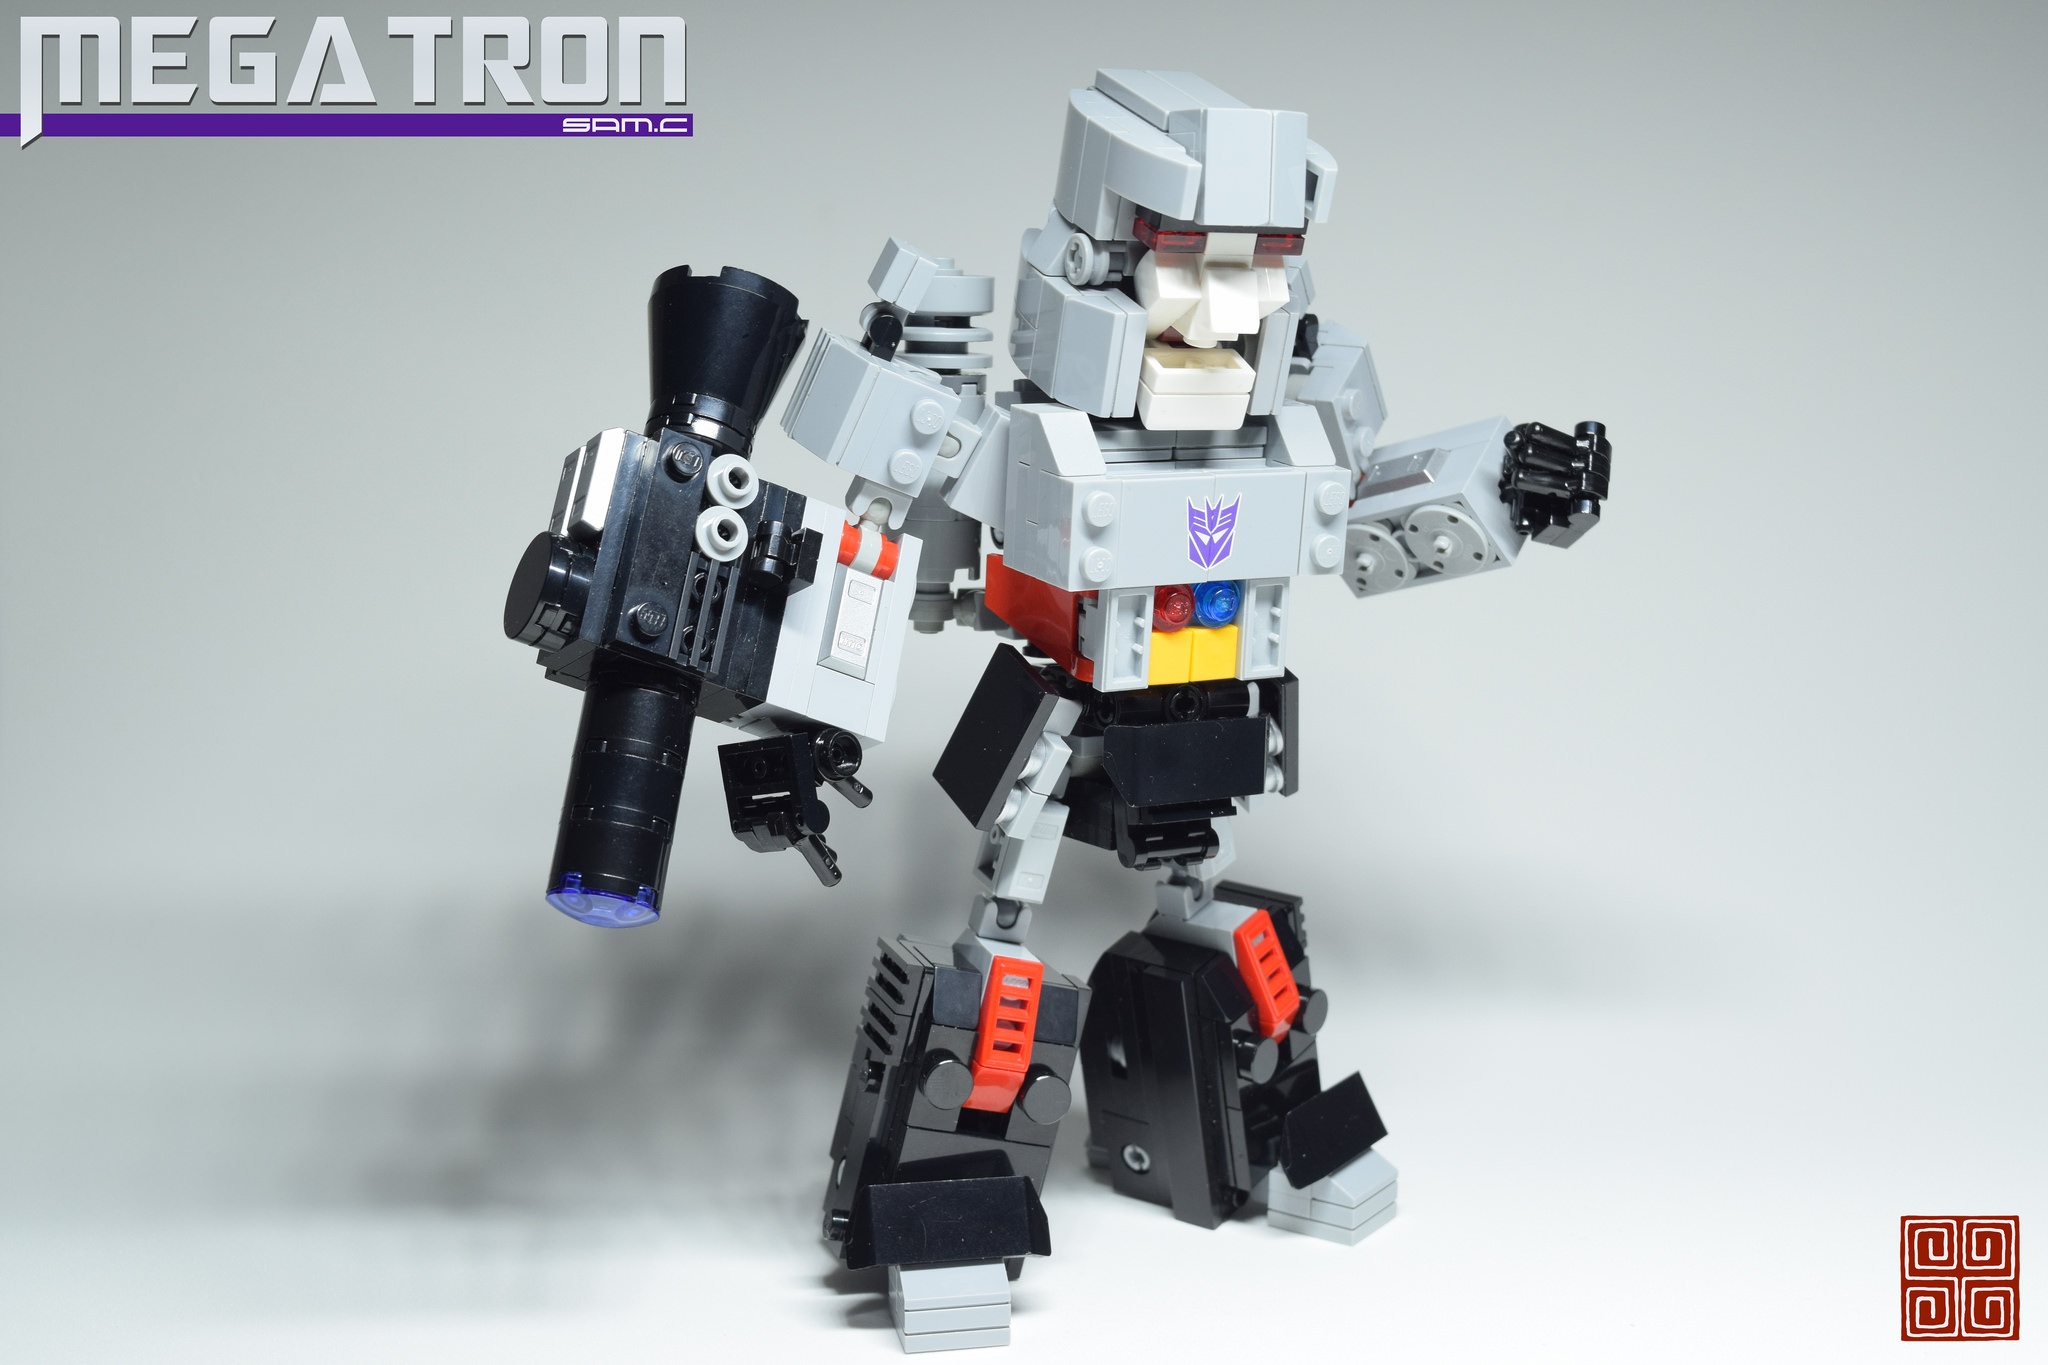 Megatron trasformabile super deformed LEGO #LegaNerd